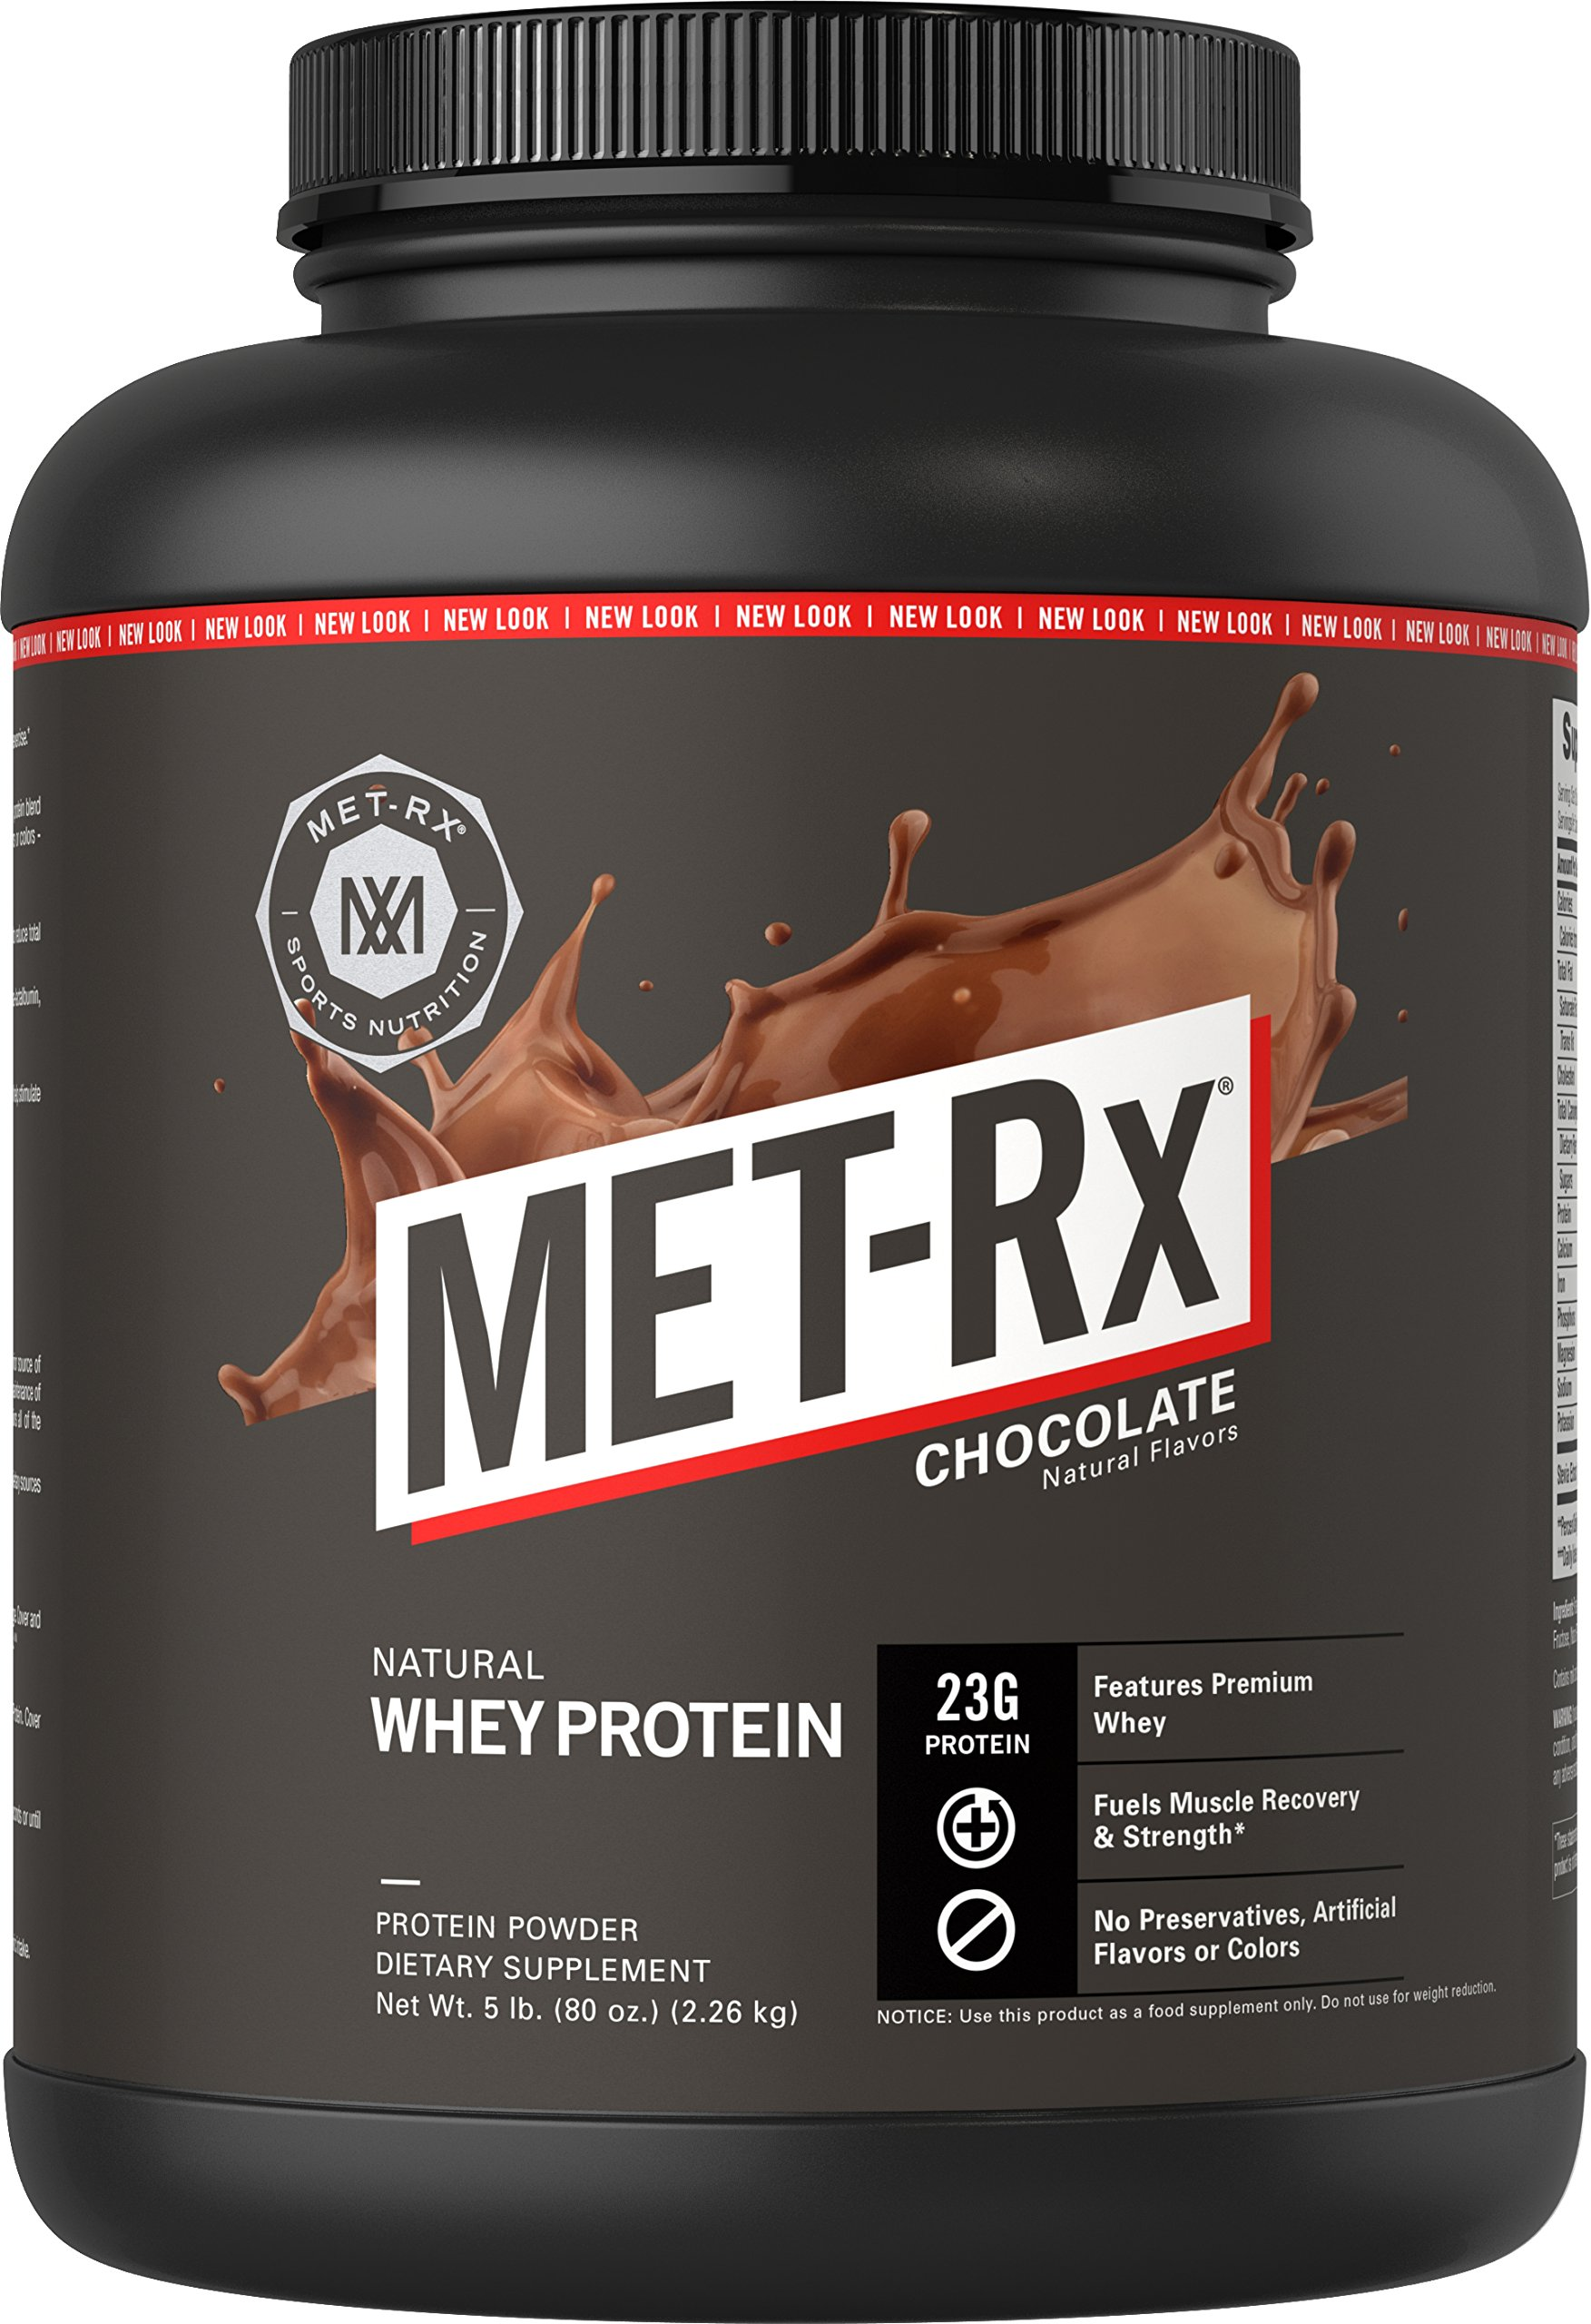 MET-Rx Natural Whey Protein Powder, Great for Meal Replacement Shakes, Low Carb, Gluten Free, Chocolate, 5 lbs by MET-Rx